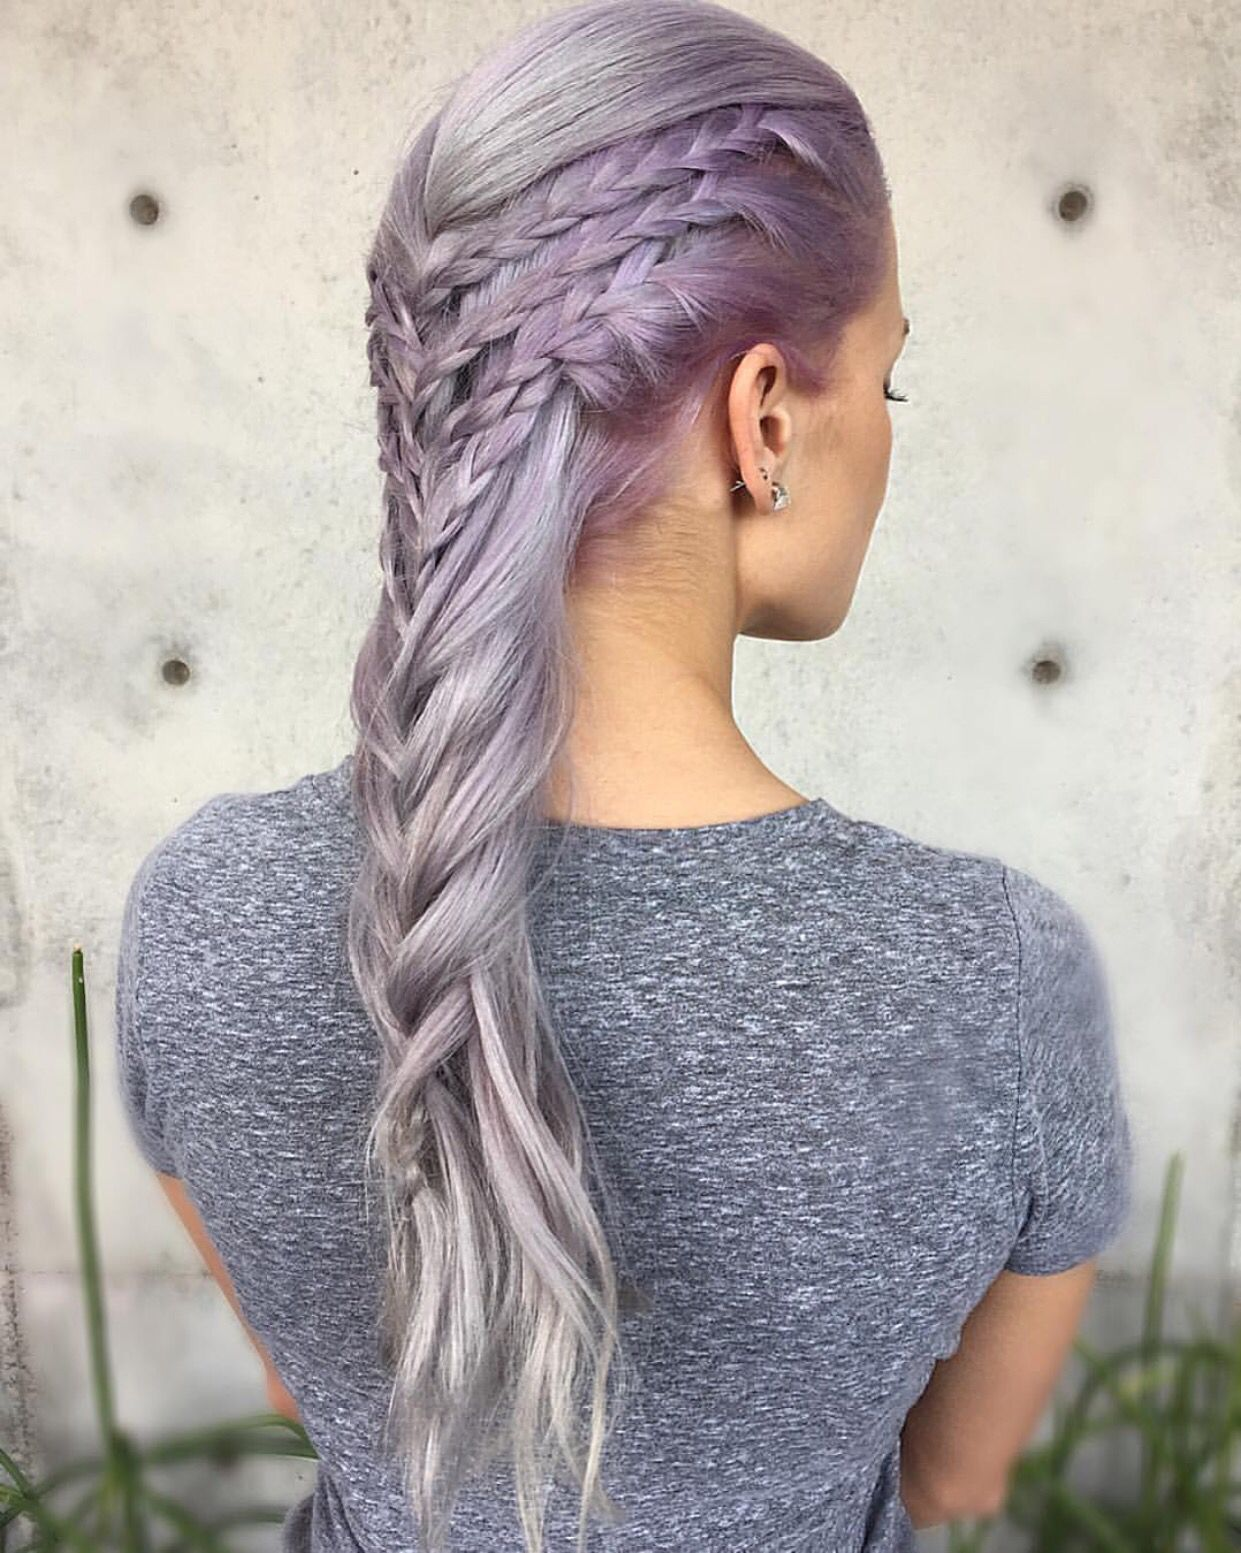 Game of Thrones braided style and lavender hair color ...